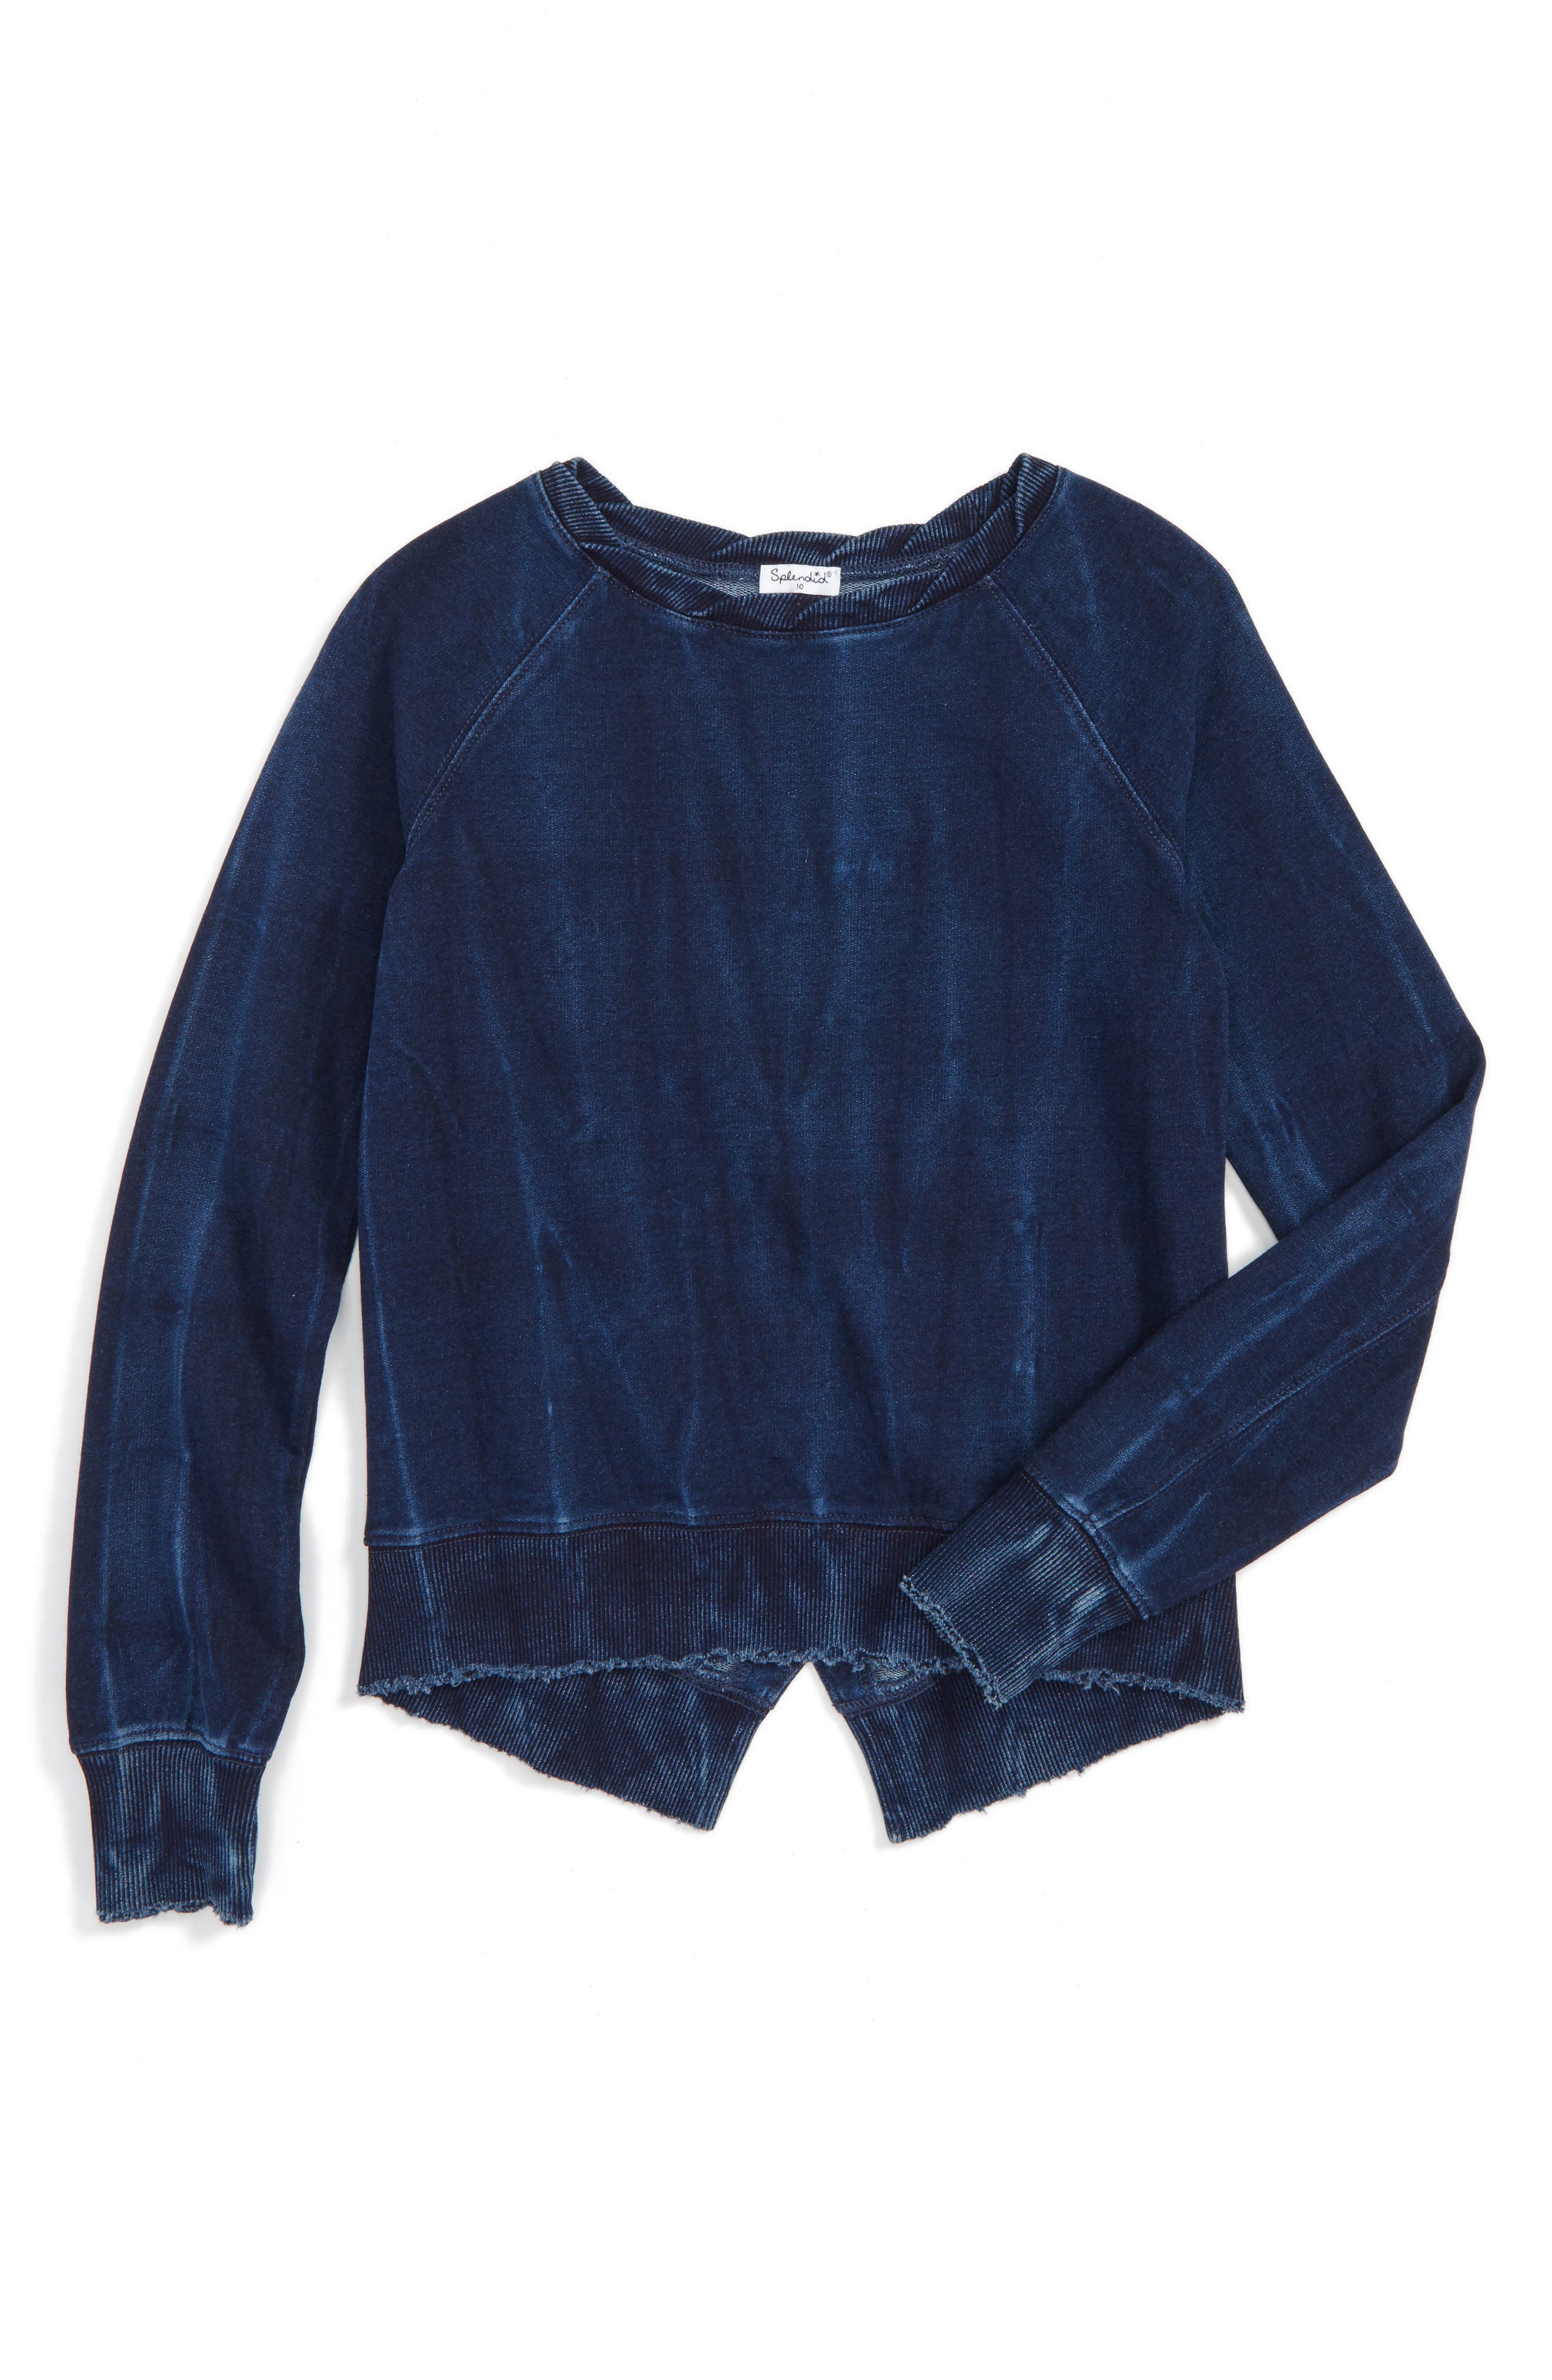 Splendid Split Hem Sweatshirt (Big Girls)